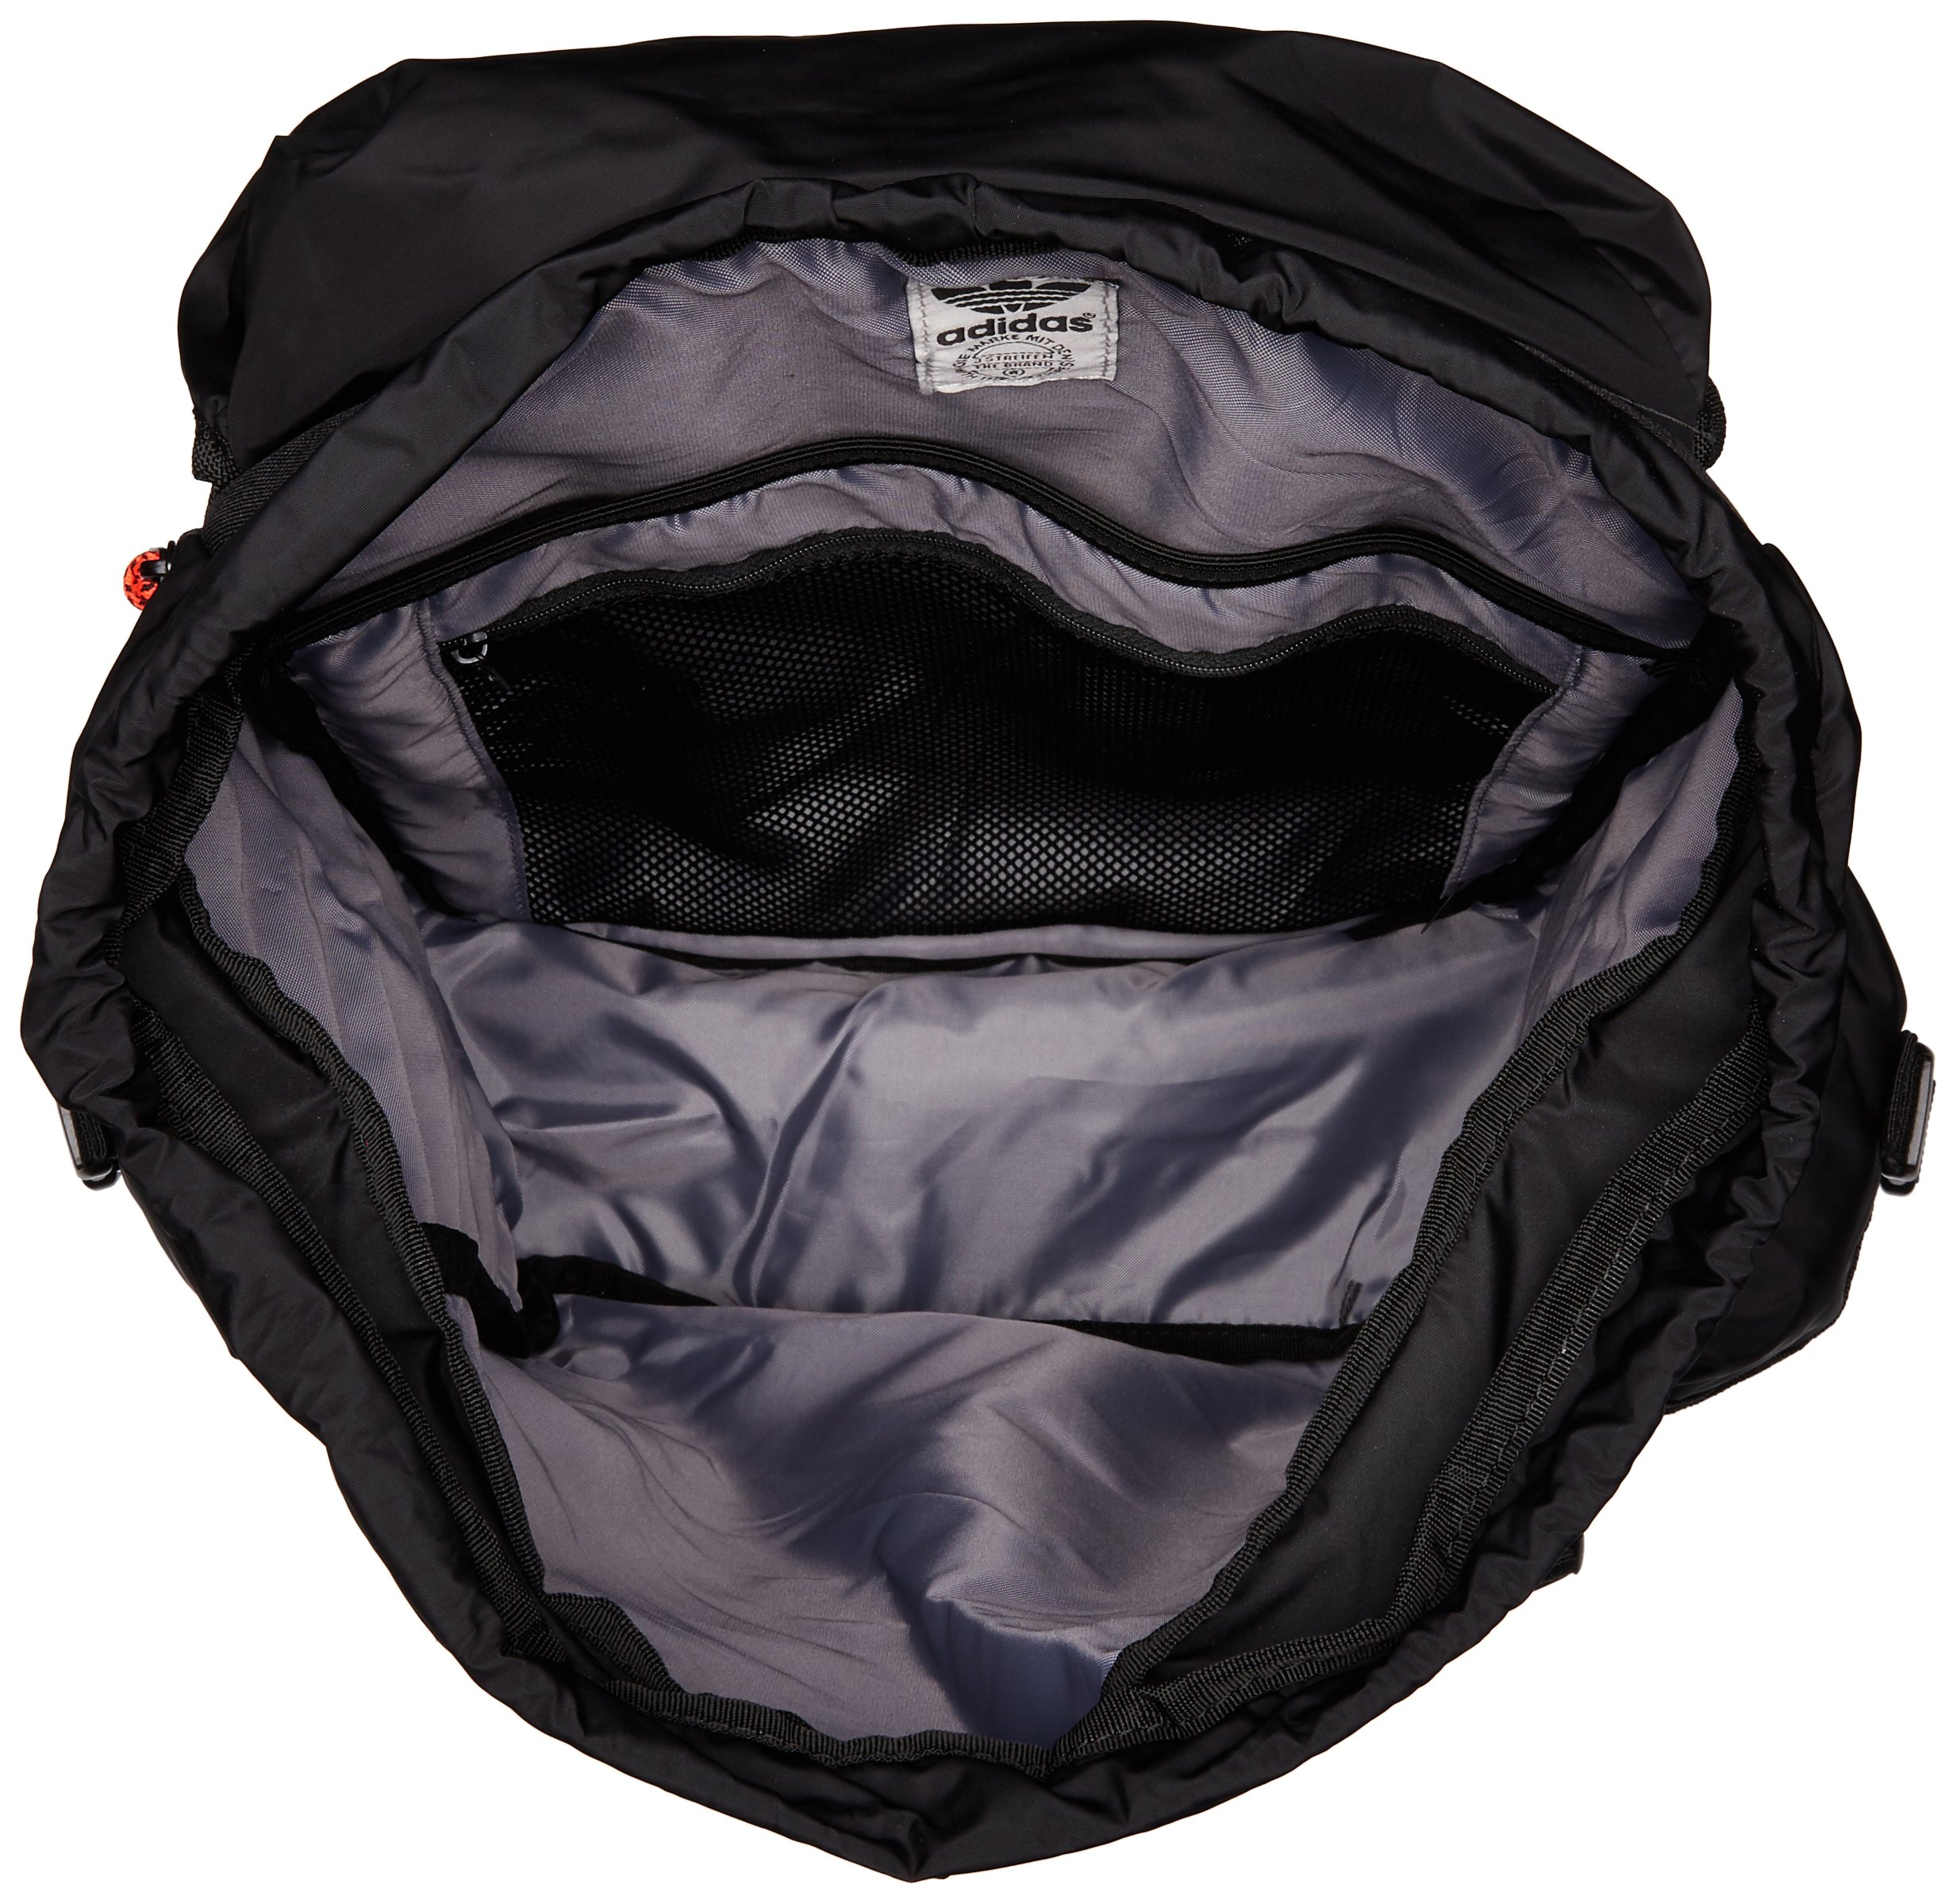 0025e4674e6a adidas Originals Urban Utility Backpack – TigerSportsKO.com